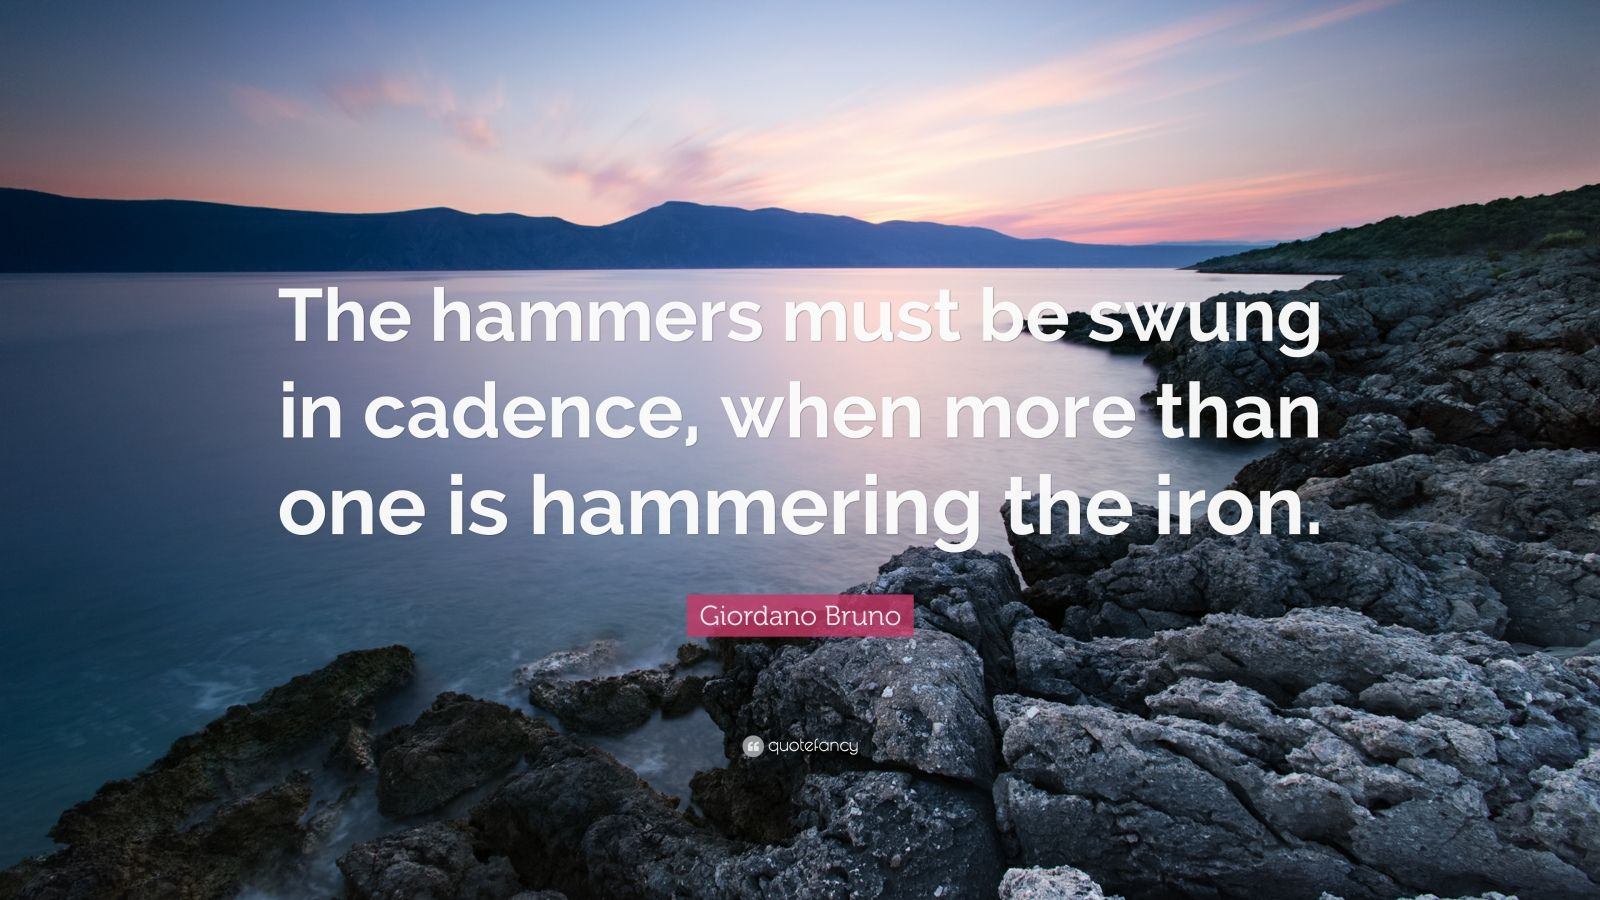 """Giordano Bruno Quote: """"The hammers must be swung in cadence, when more than one is hammering the iron."""""""